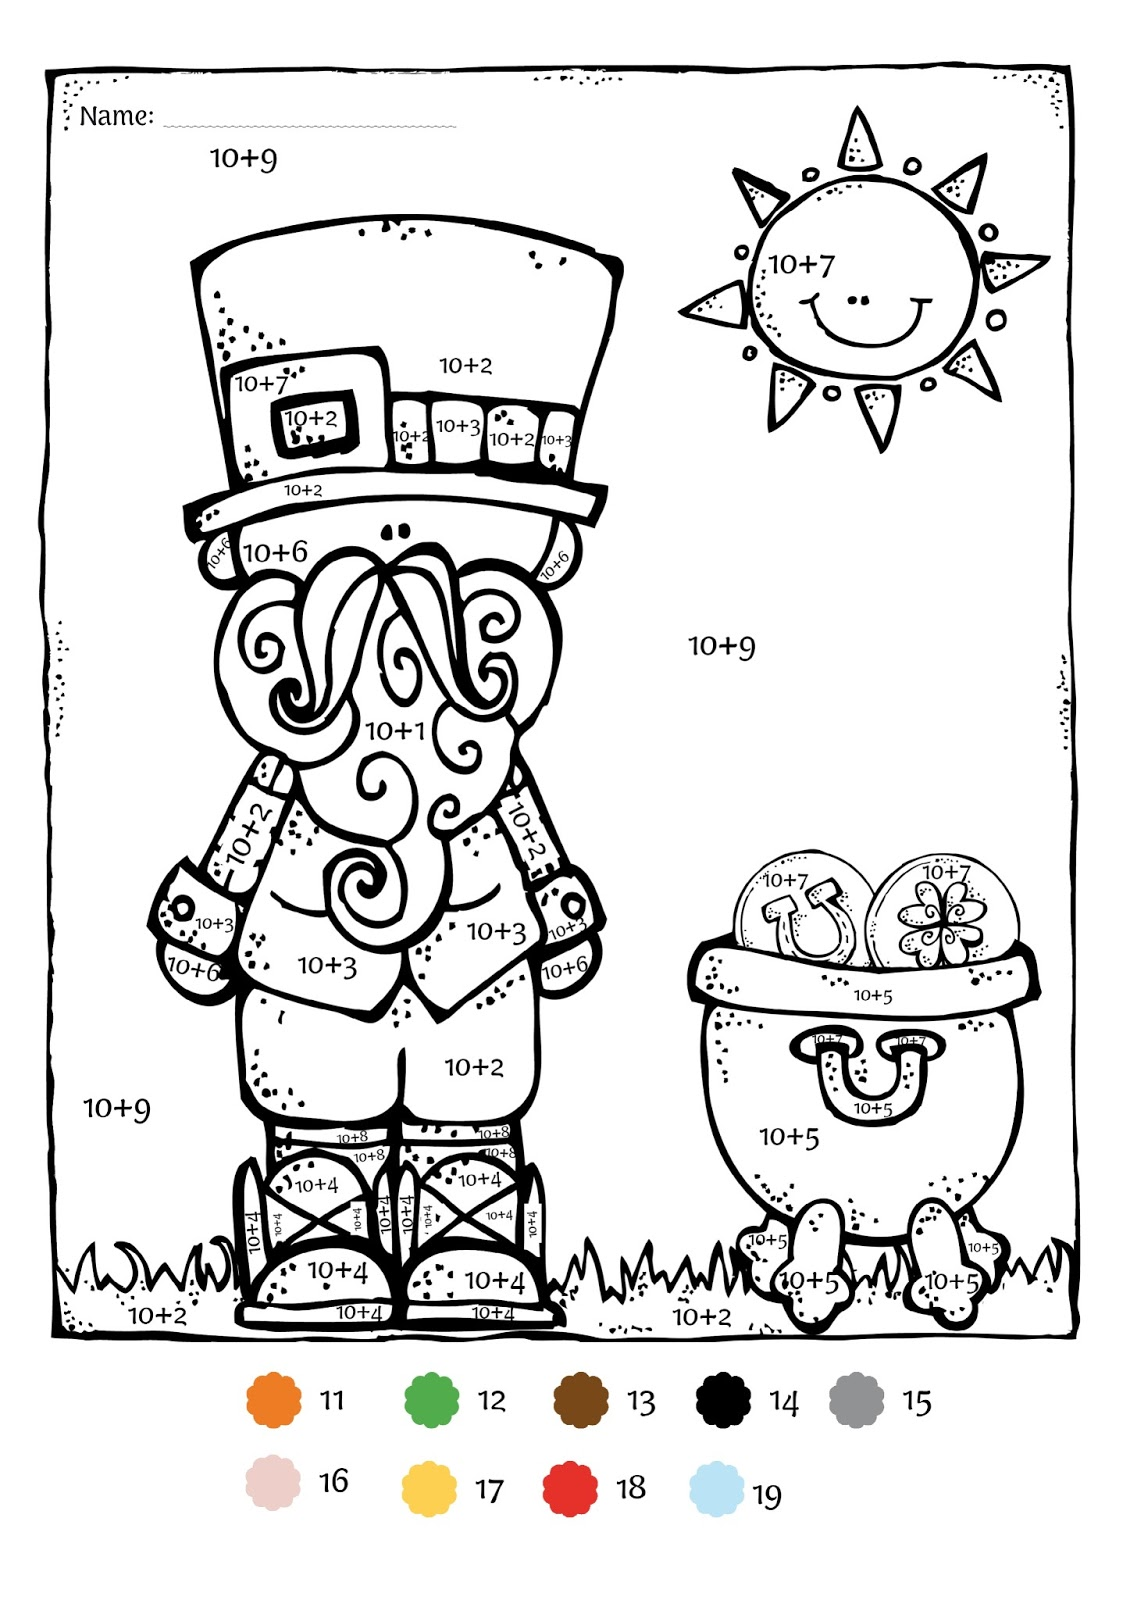 St Patricks Day Coloring Pages 2013 Fun Coloring Pages